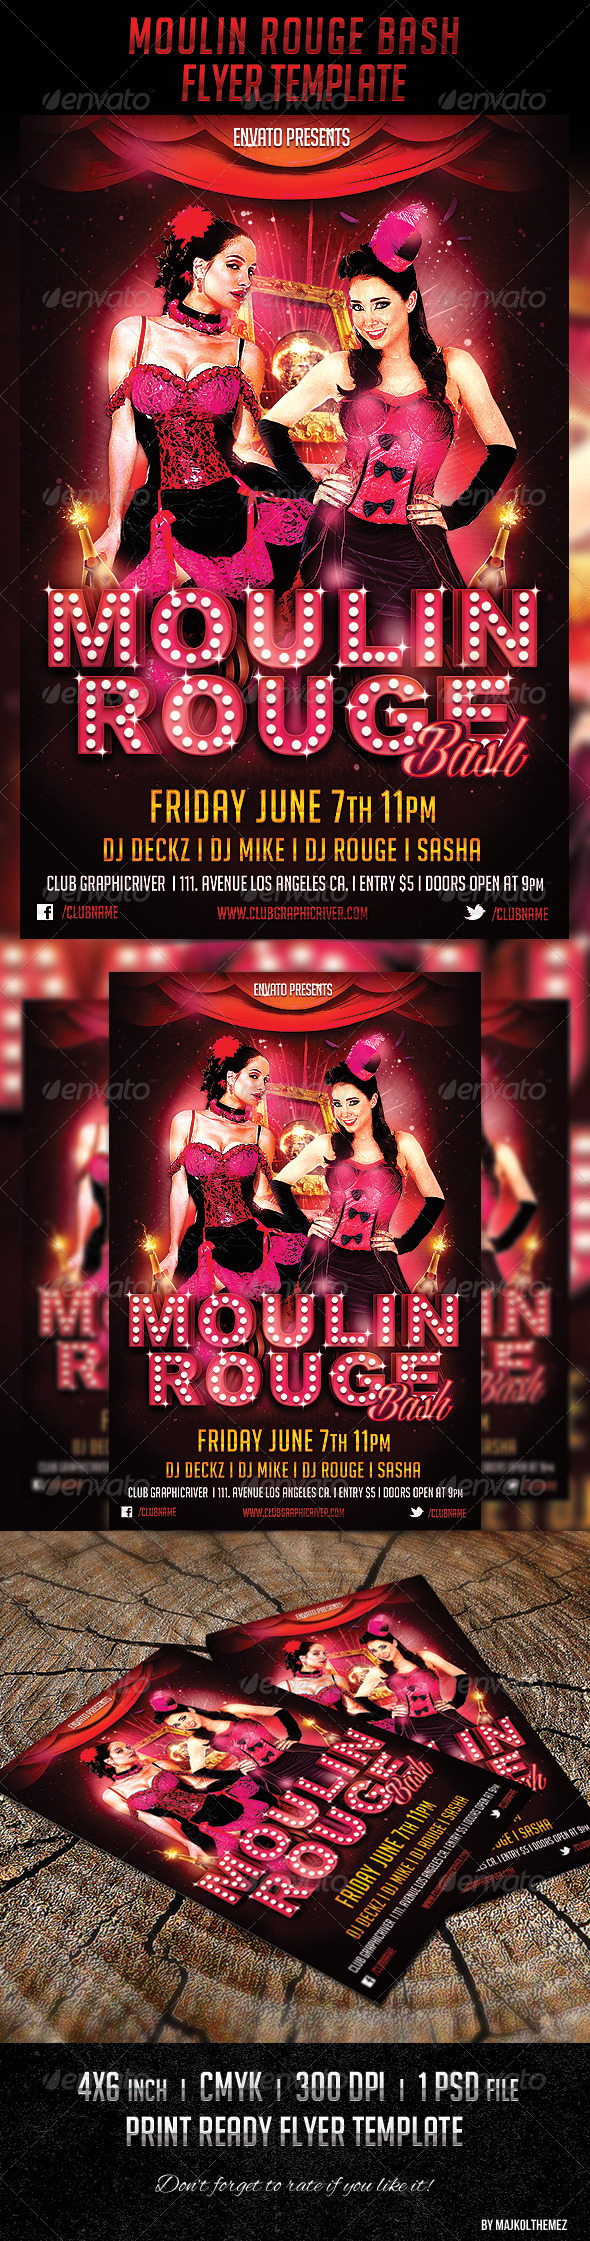 Moulin Rouge Bash Flyer Template by majkolthemez | GraphicRiver